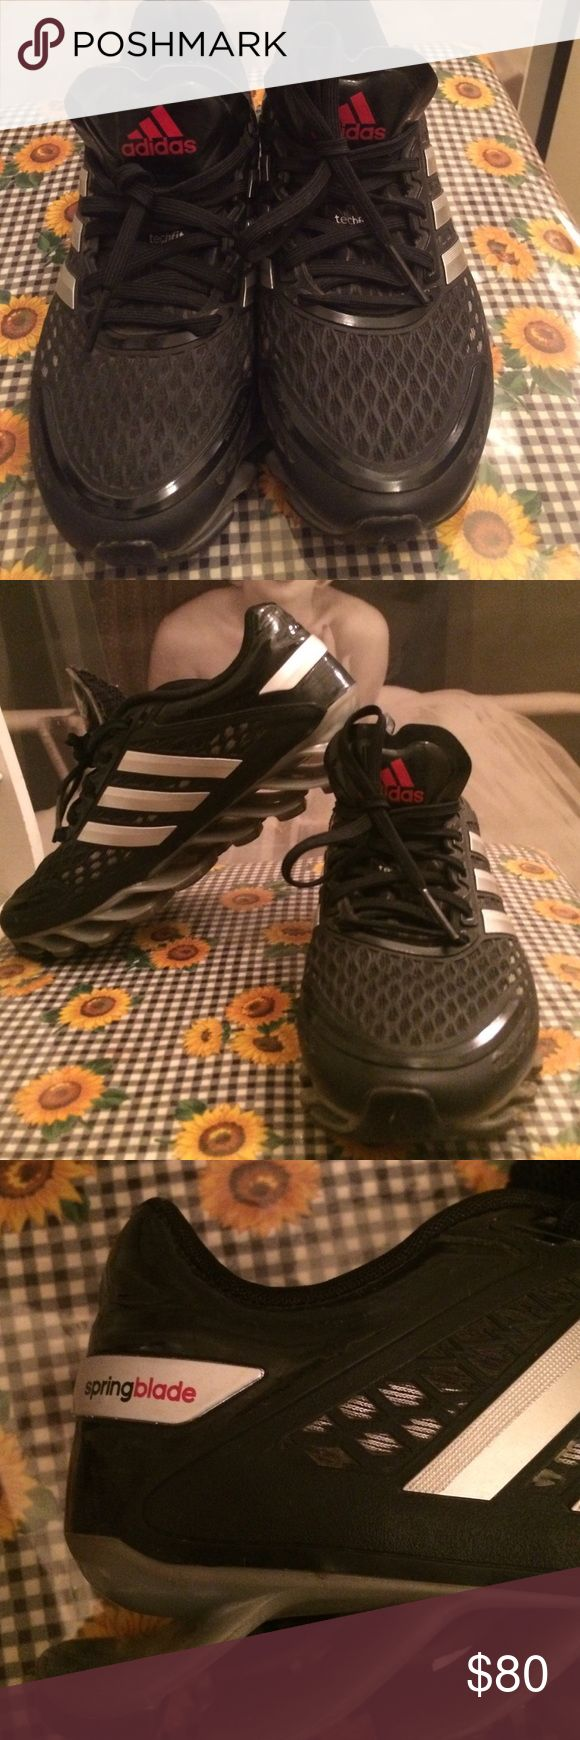 Adidas springblade Size 4 youth .. Excellent condition... Black and silver.. Adidas Shoes Sneakers